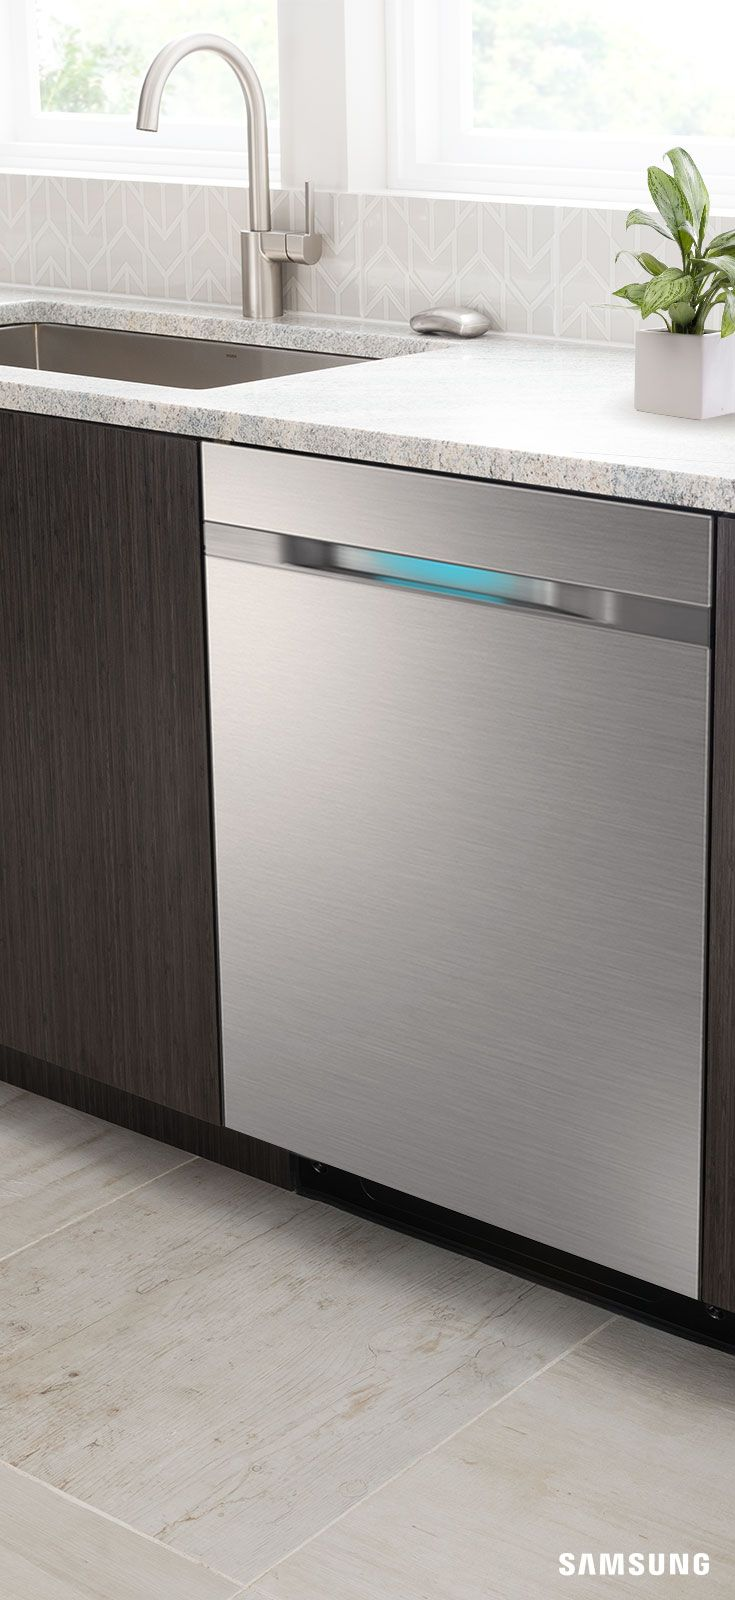 The Samsung Waterwall Dishwasher Adds An Element Of Boldness To